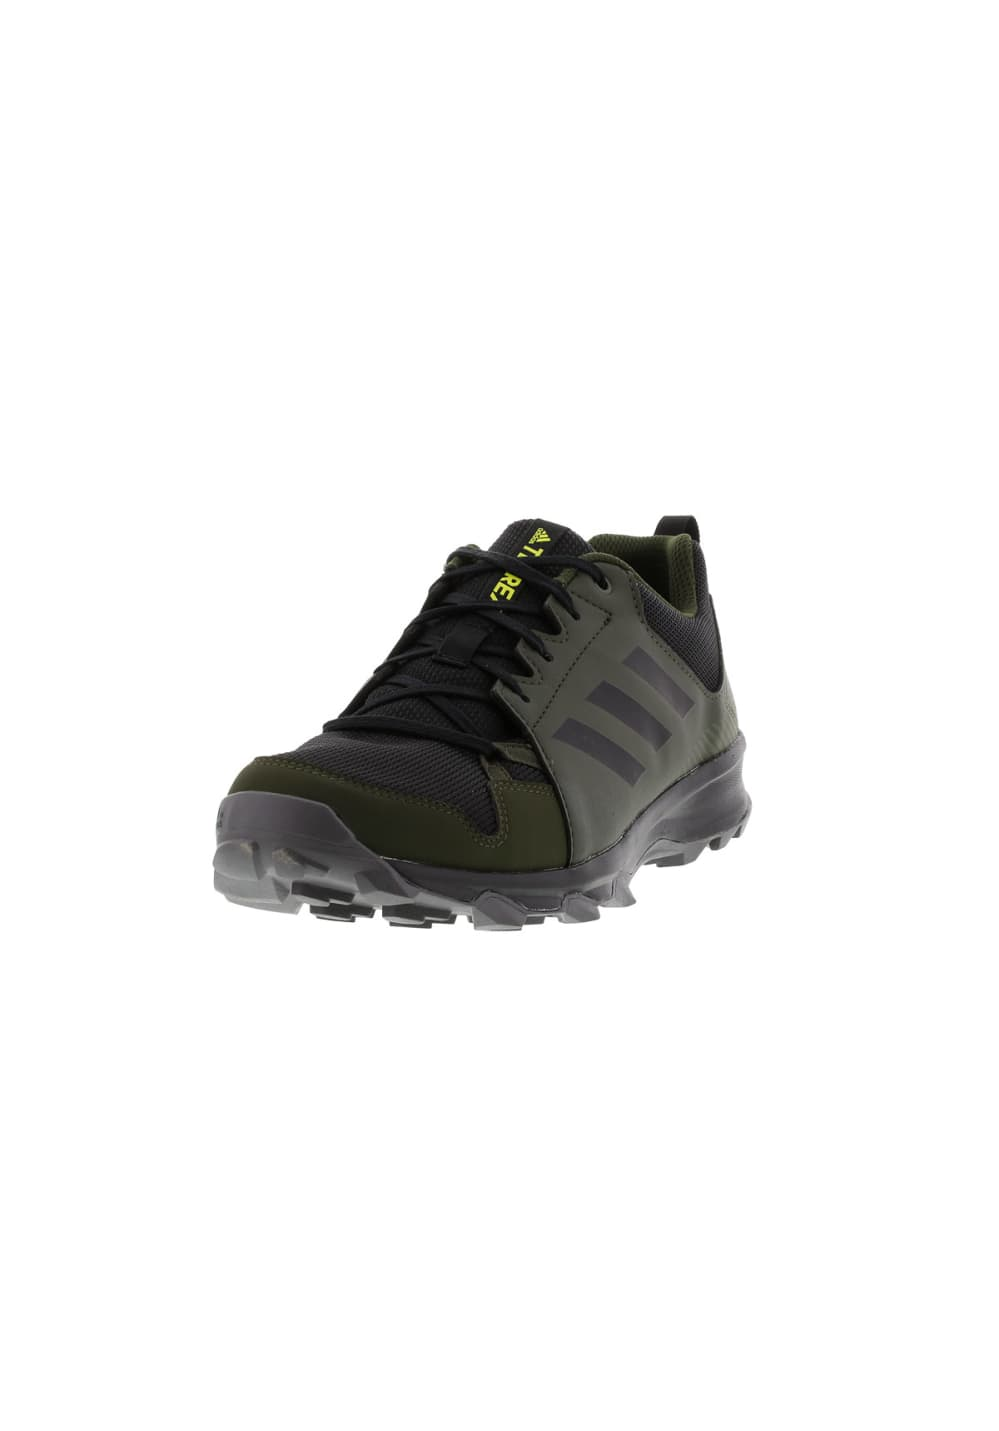 2823eb4da adidas-terrex-terrex-tracerocker-gtx-outdoor-shoes-men -green-pid-0002000577601.jpg